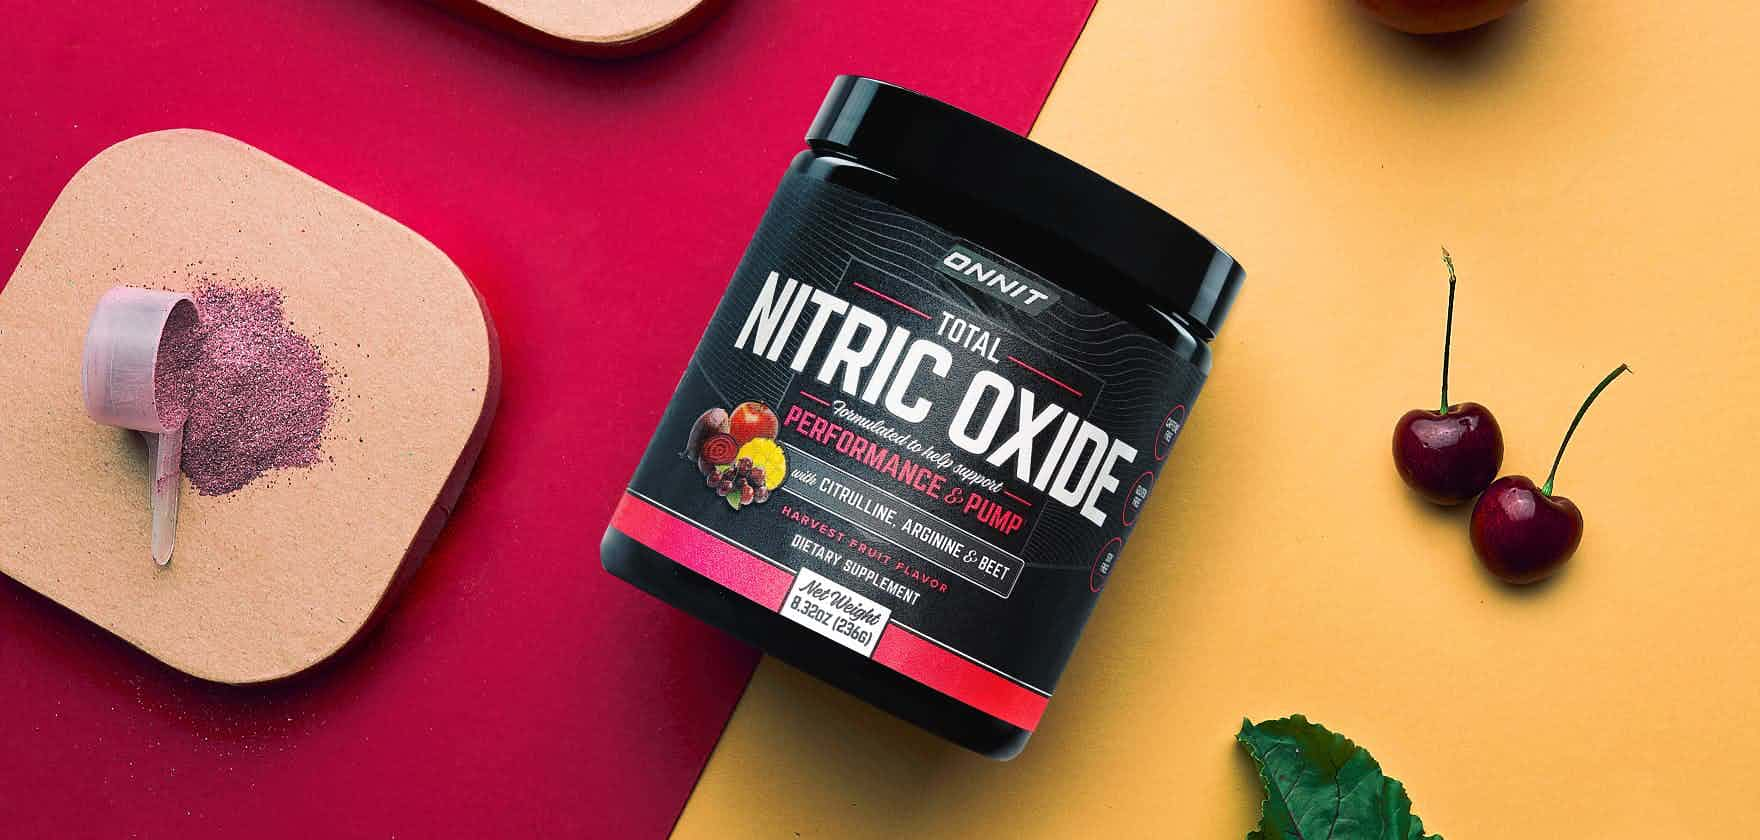 Contain oxide nitric naturally what foods 16+ Foods